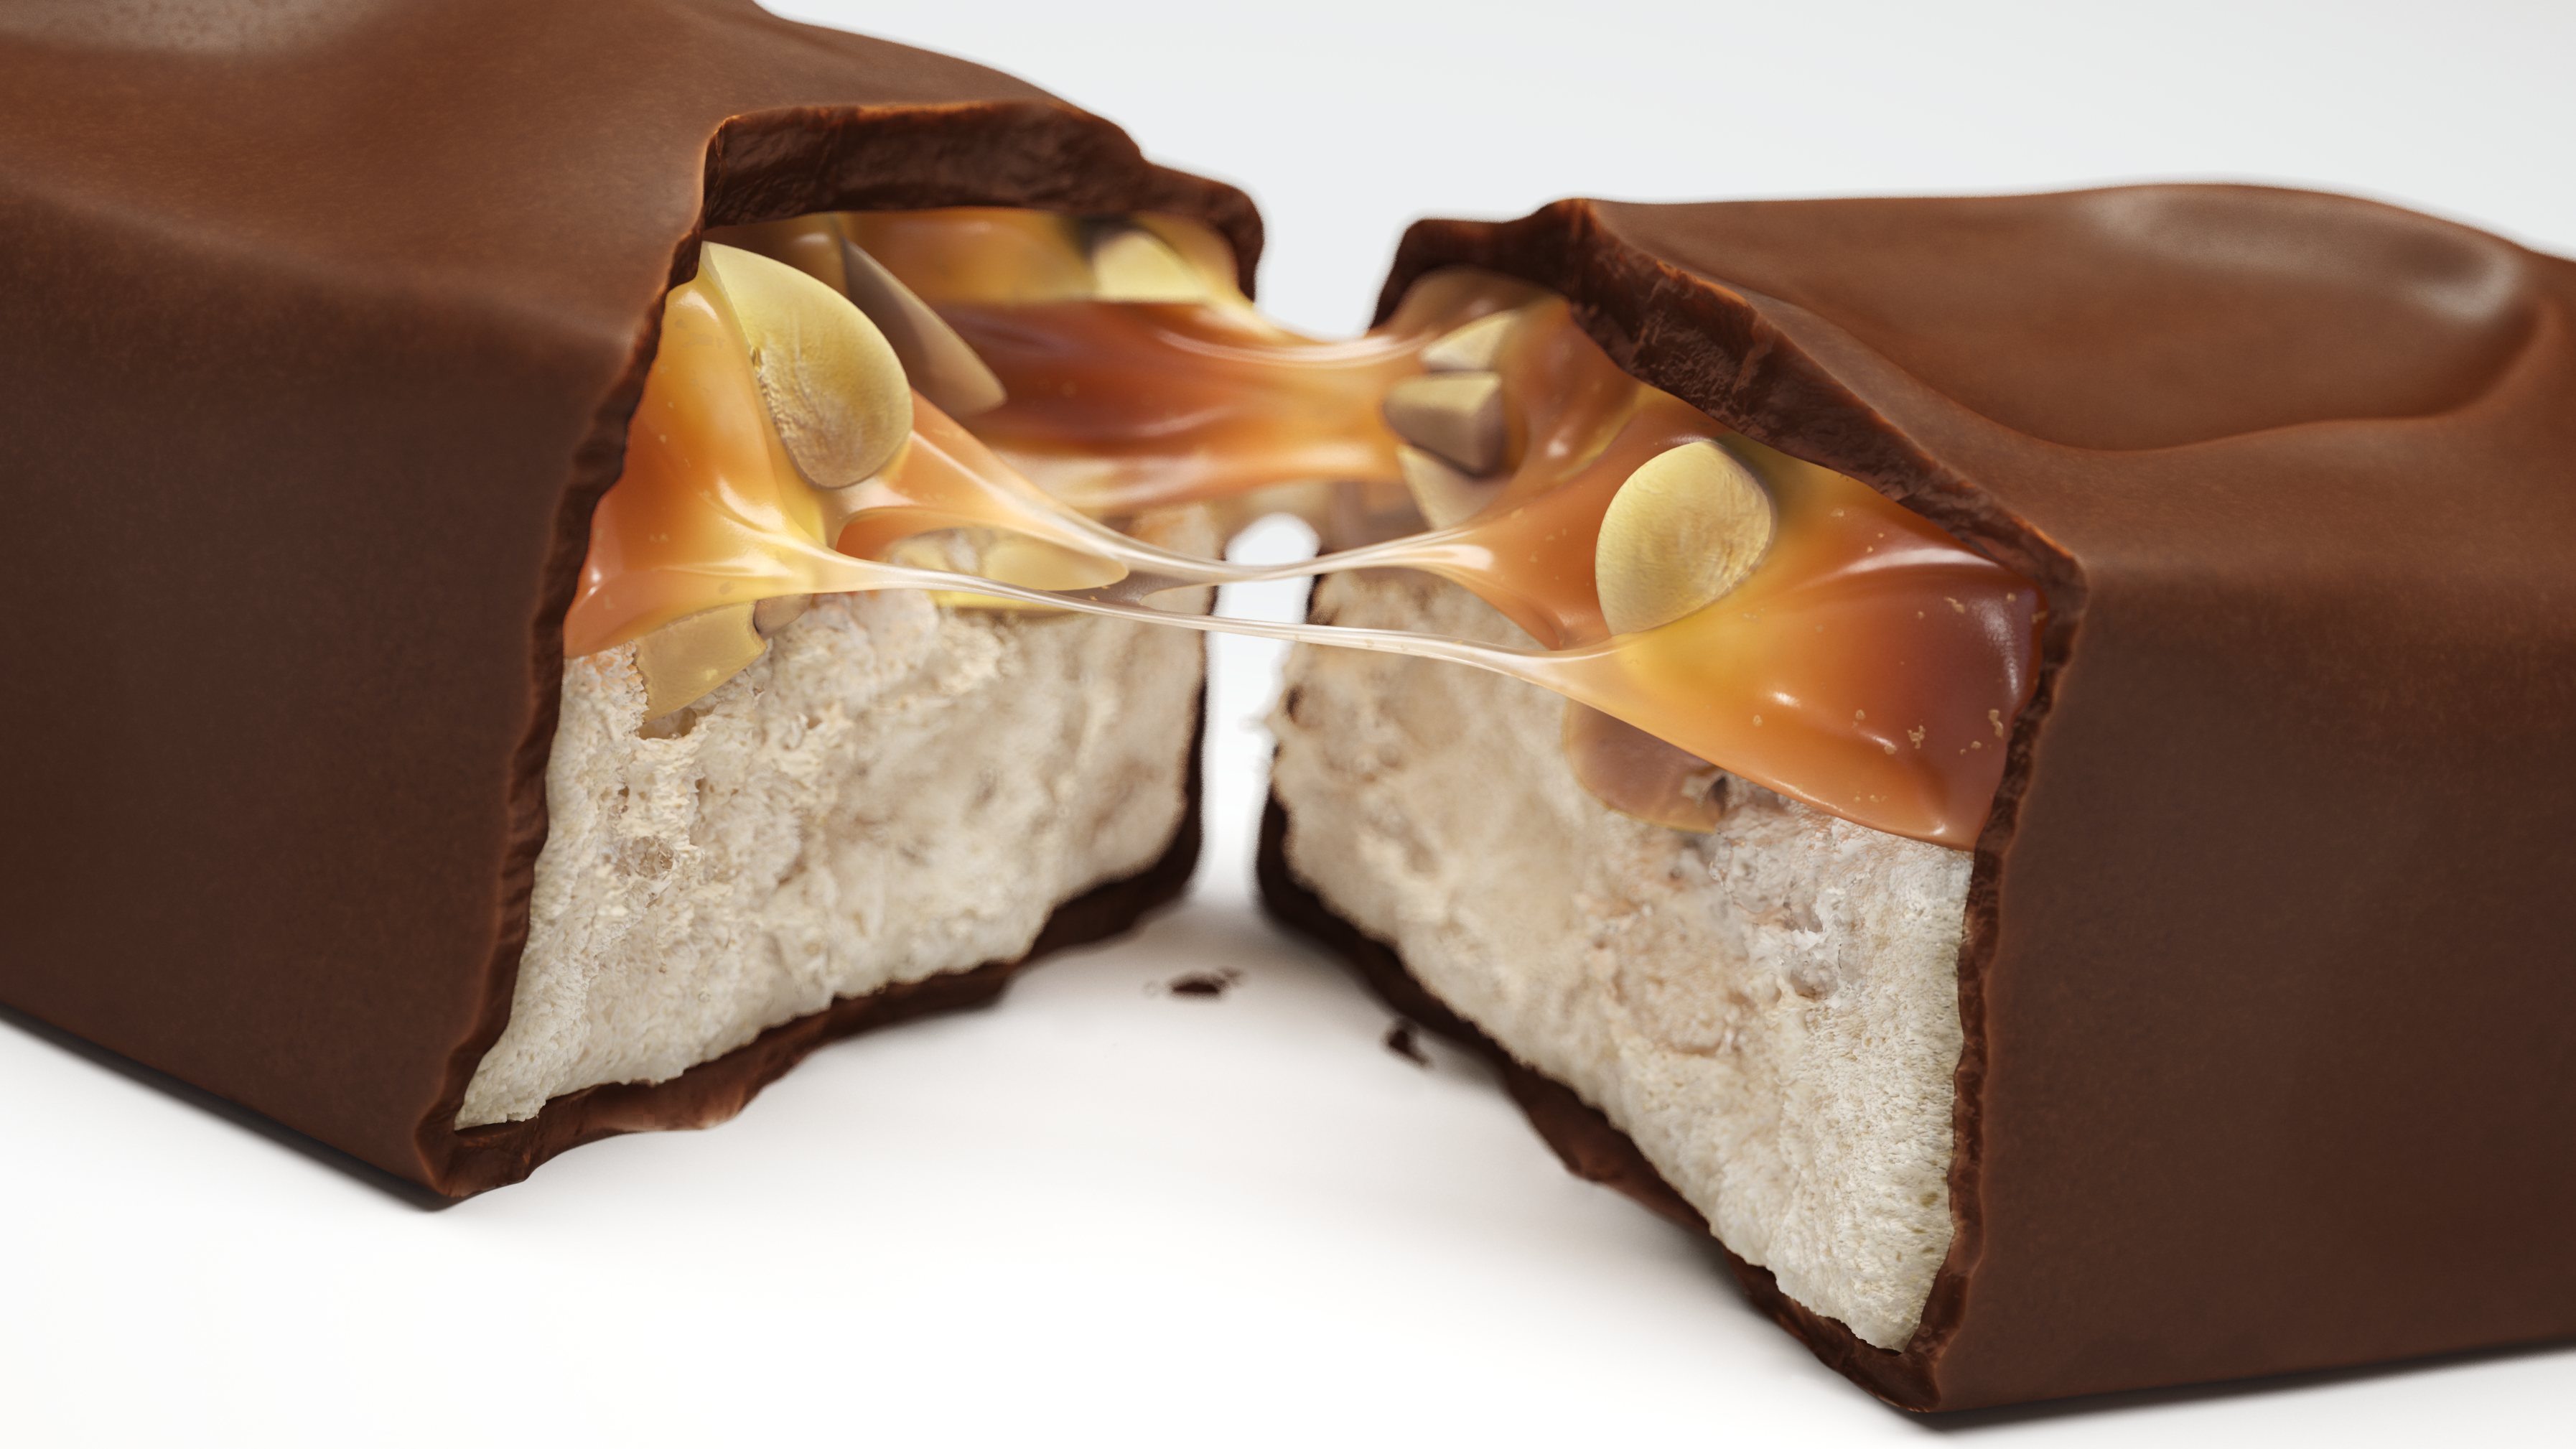 Snickers bar pulled apart